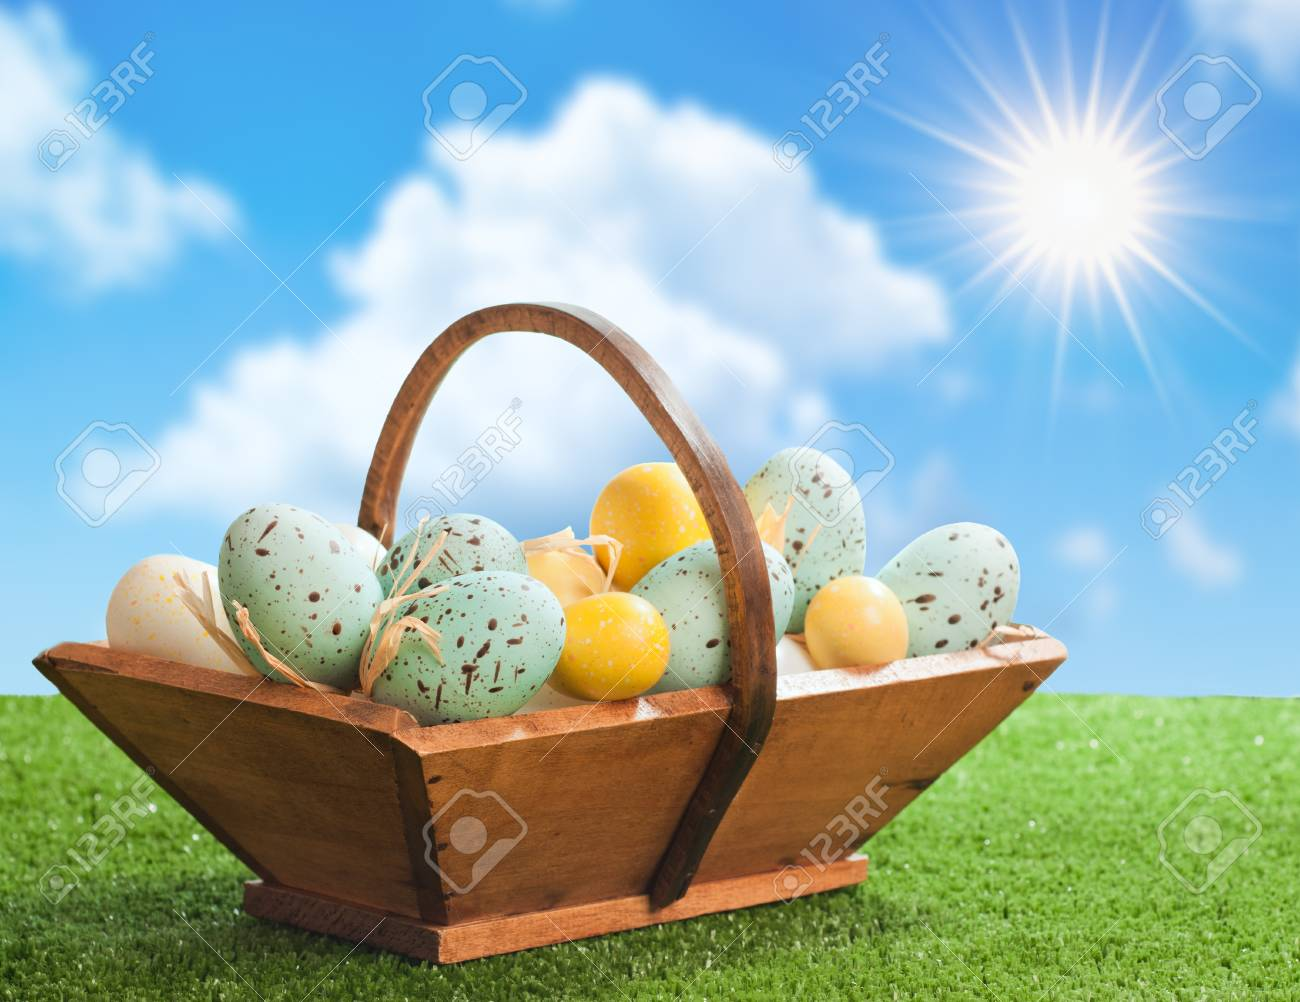 Basket of decorated Easter eggs with springtime feeling Stock Photo - 12463863